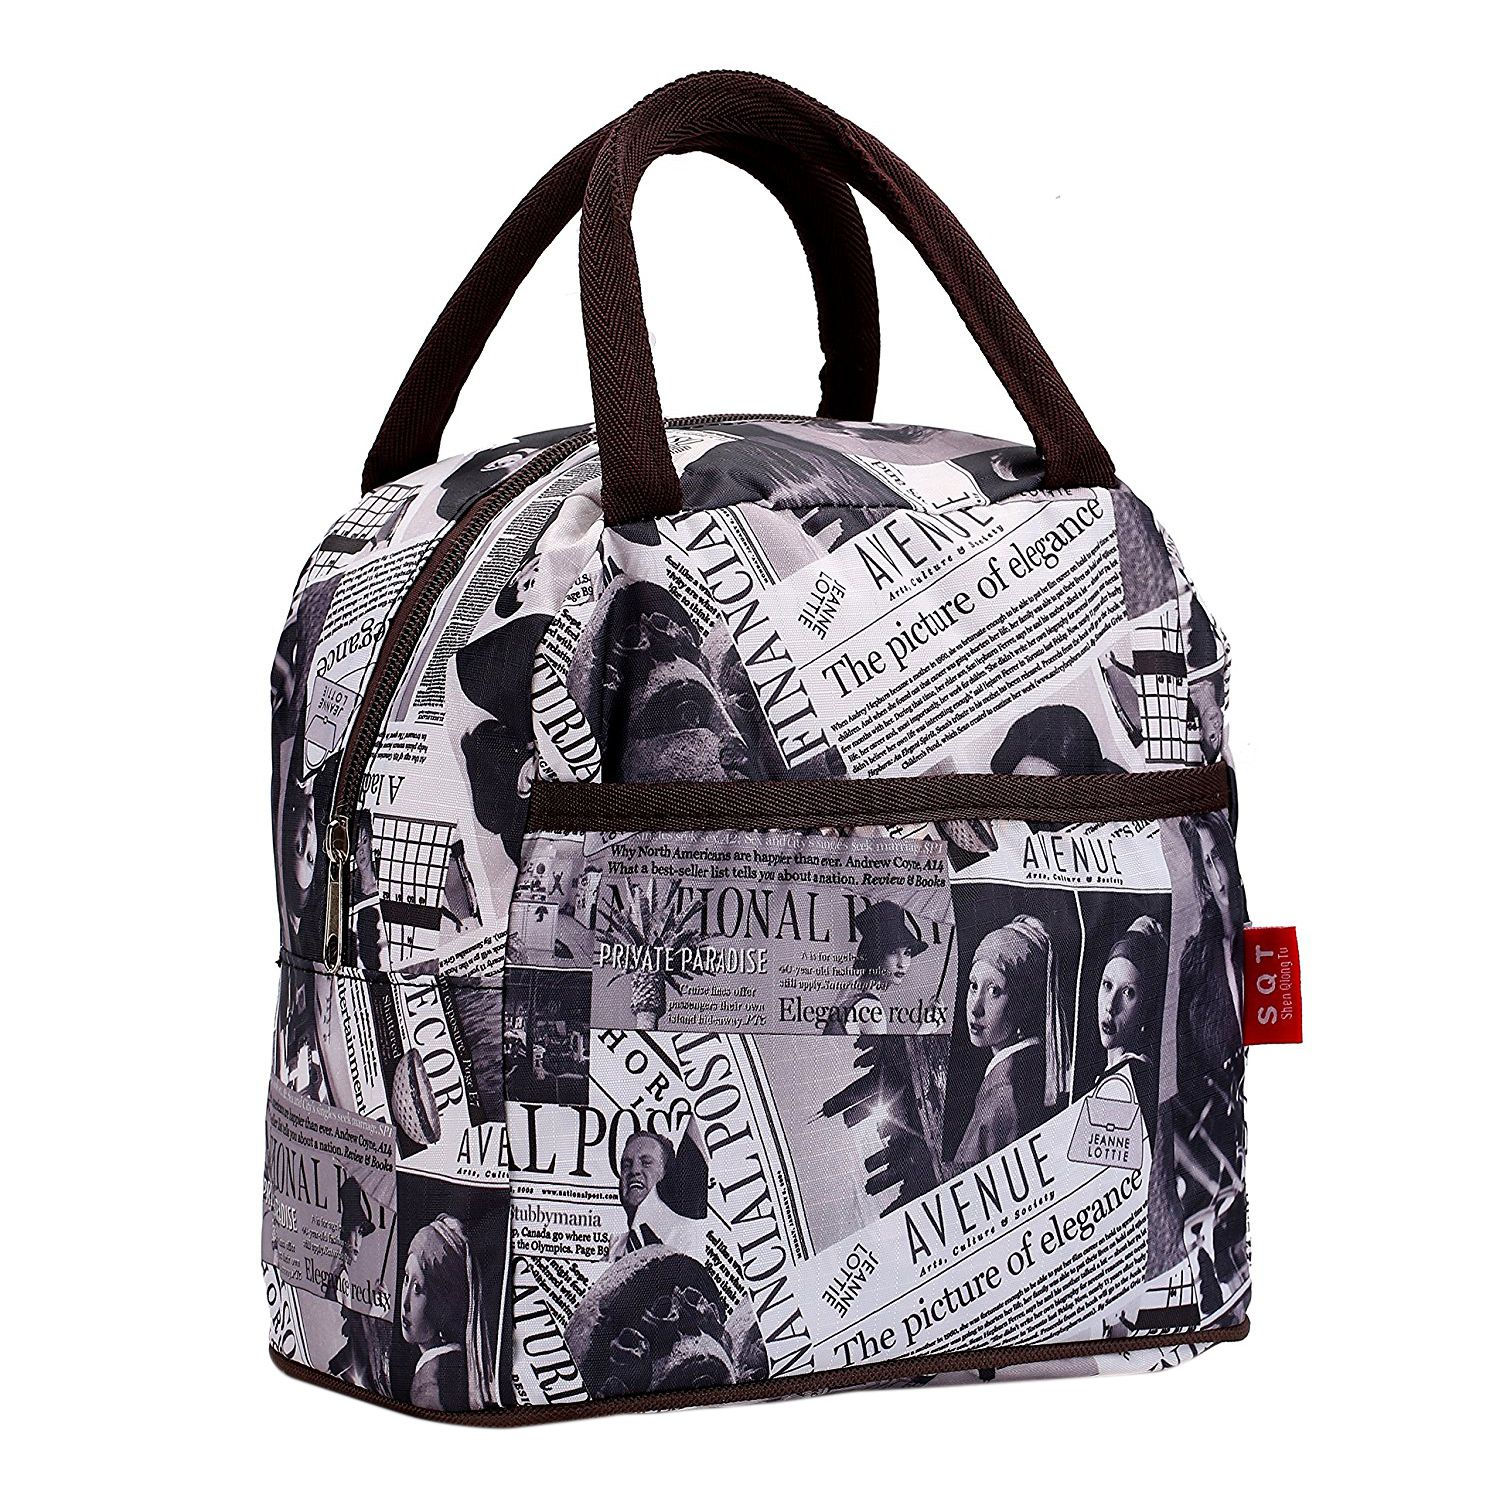 Black White Brown Style Polyester Lunch Bag Lunch Box Package Shop Tote Bag Purse For Women Girls